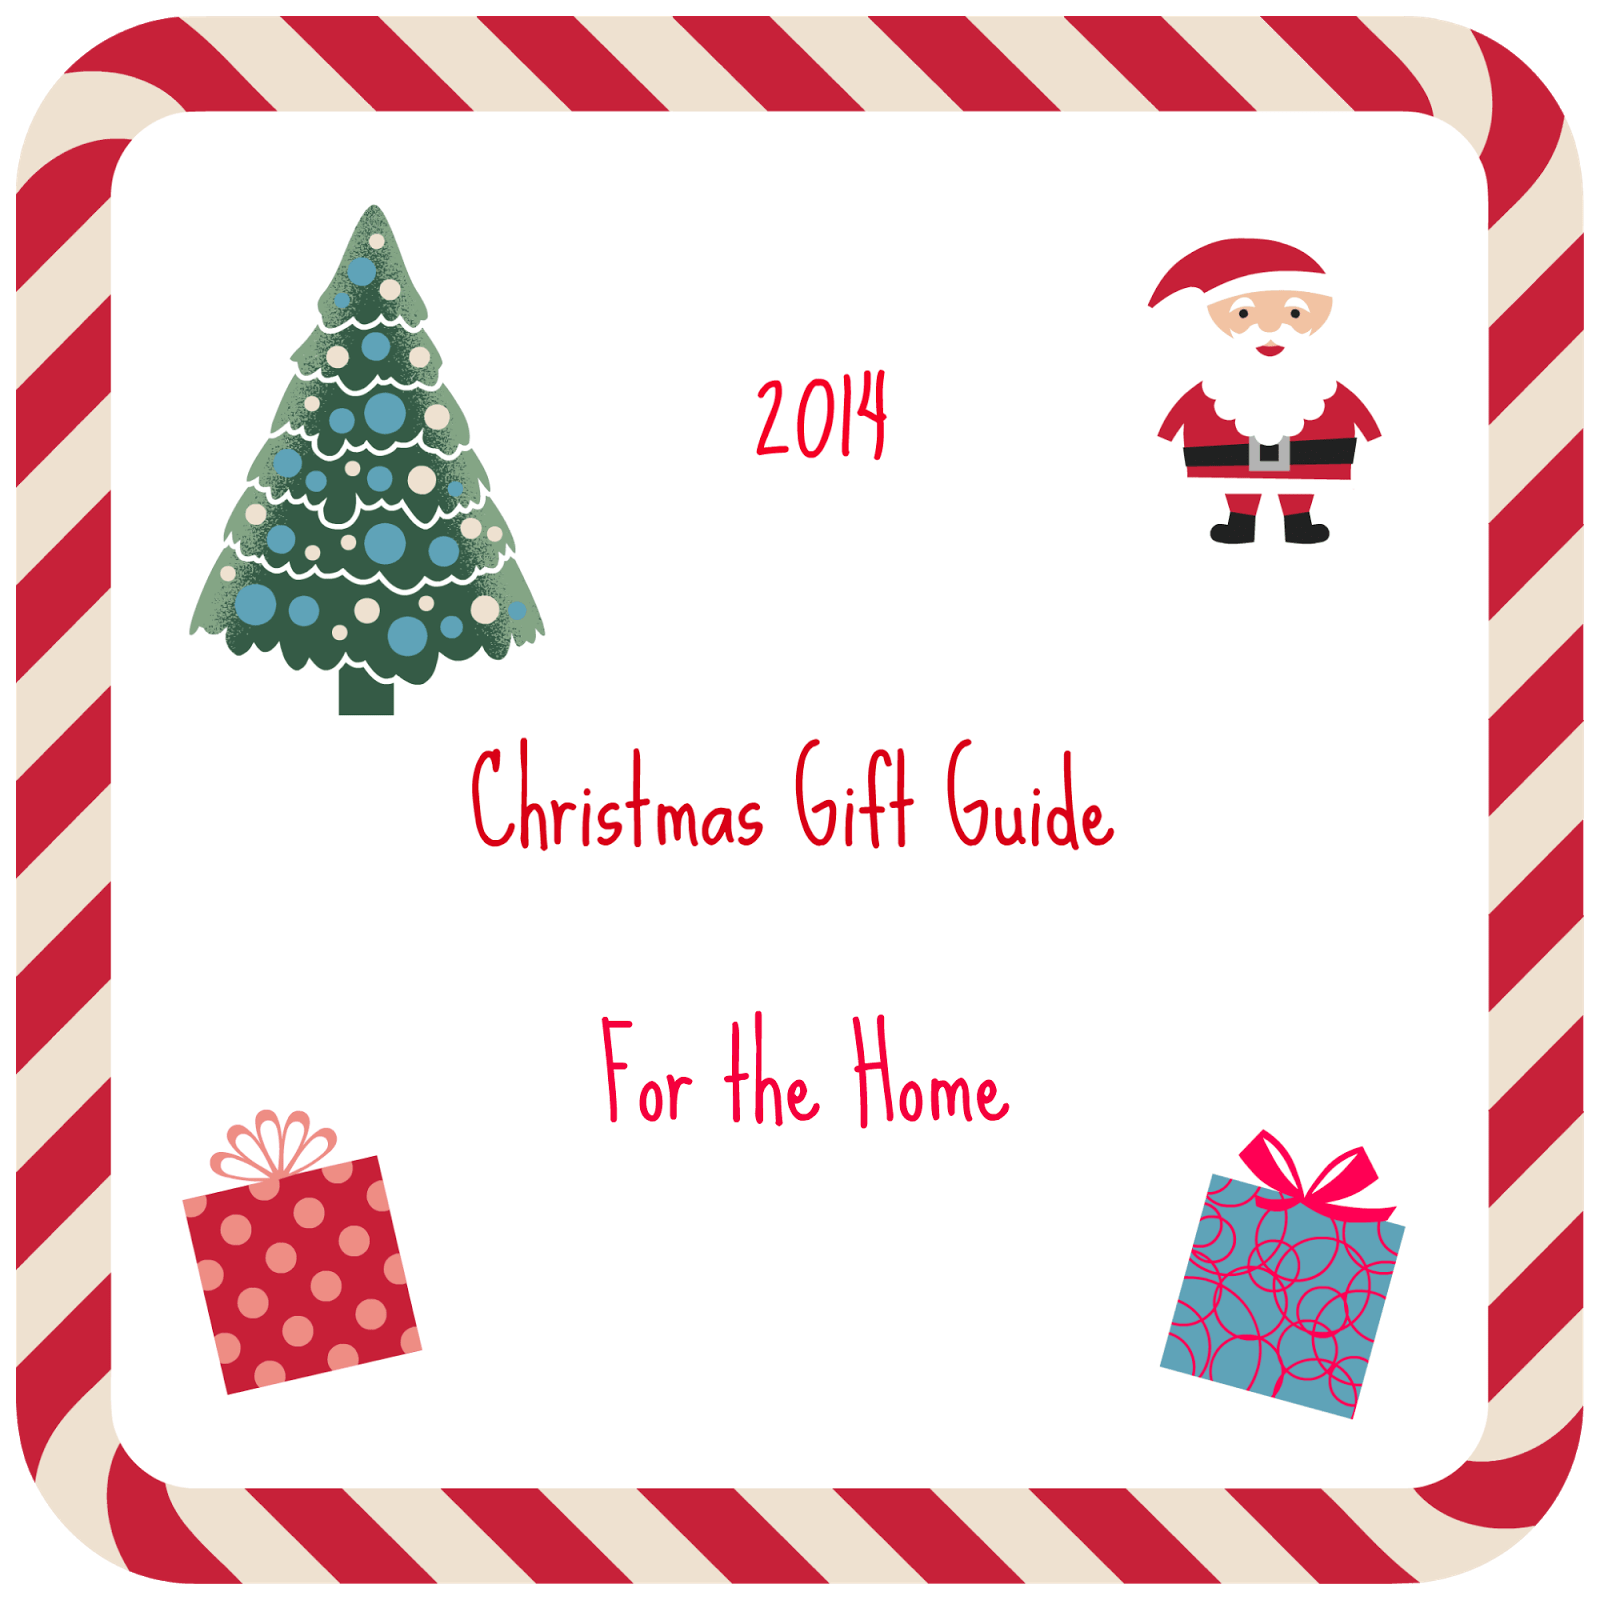 Christmas Gift Guide 2014 Archives - Emmy\'s Mummy